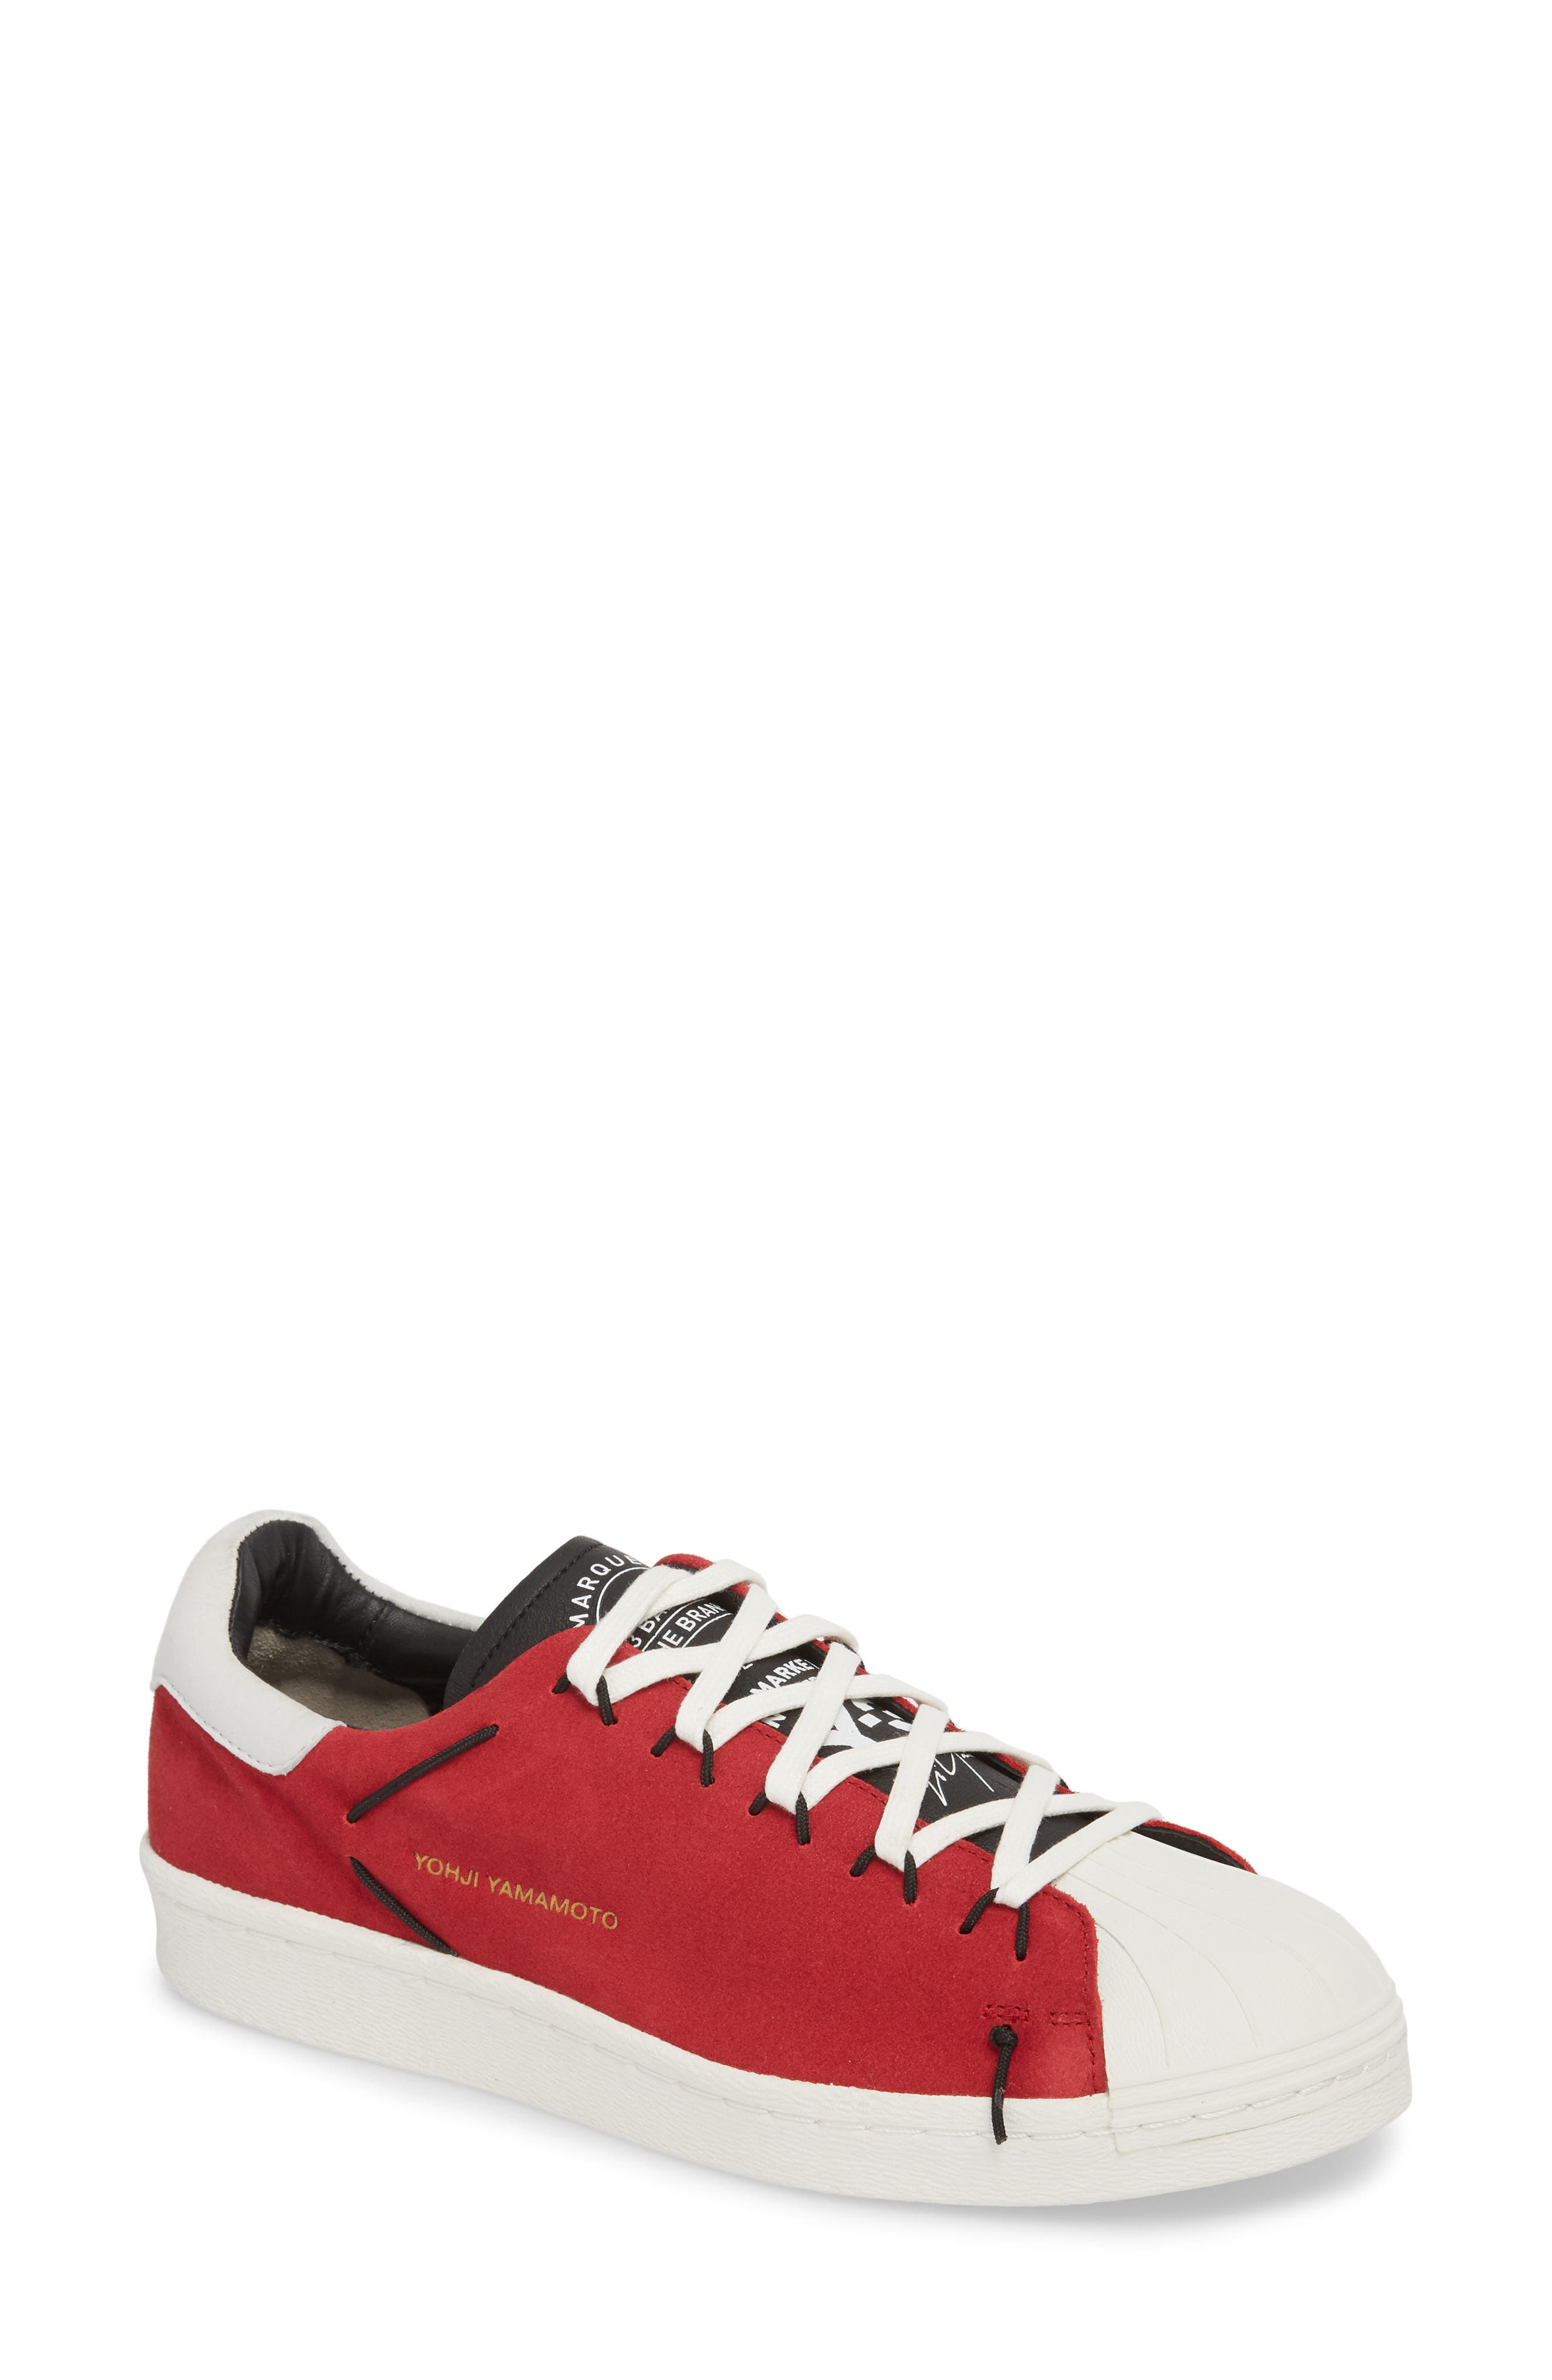 x adidas Super Knot Low Top Sneaker,                         Main,                         color, 602